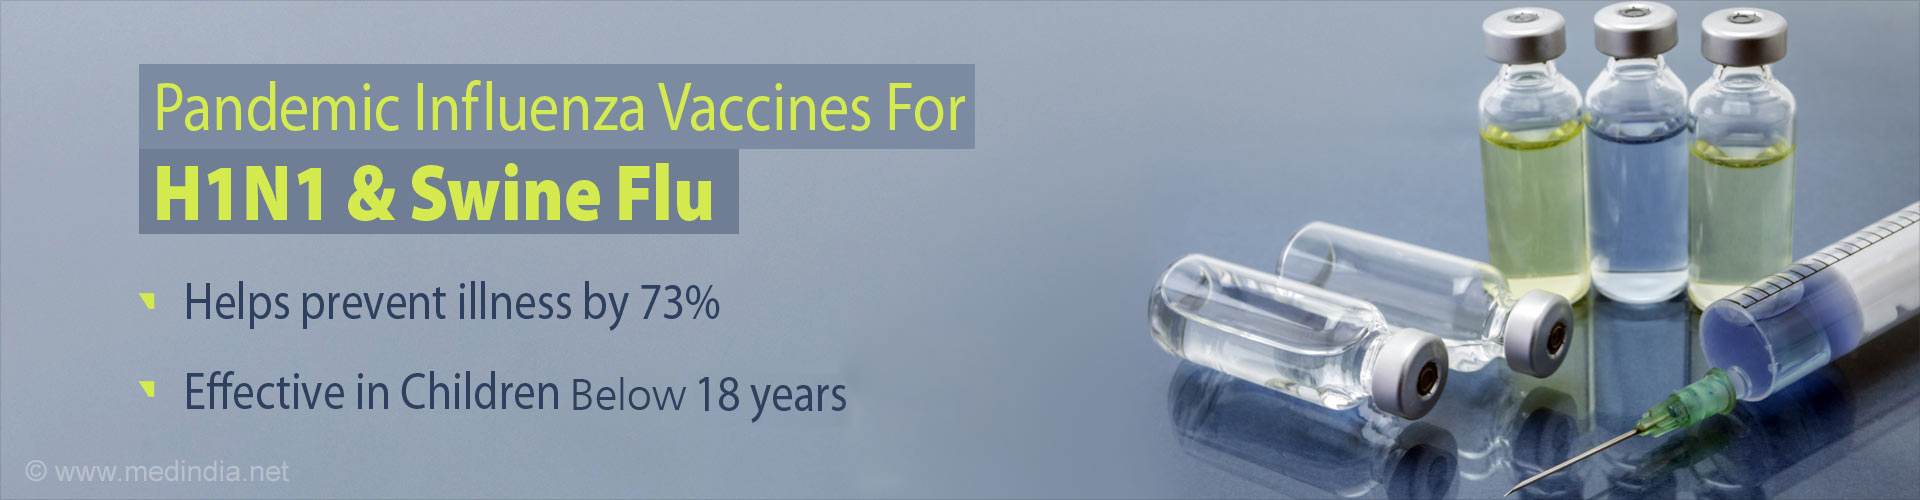 Pandemic influenza vaccine for H1N1 & Swine Flu